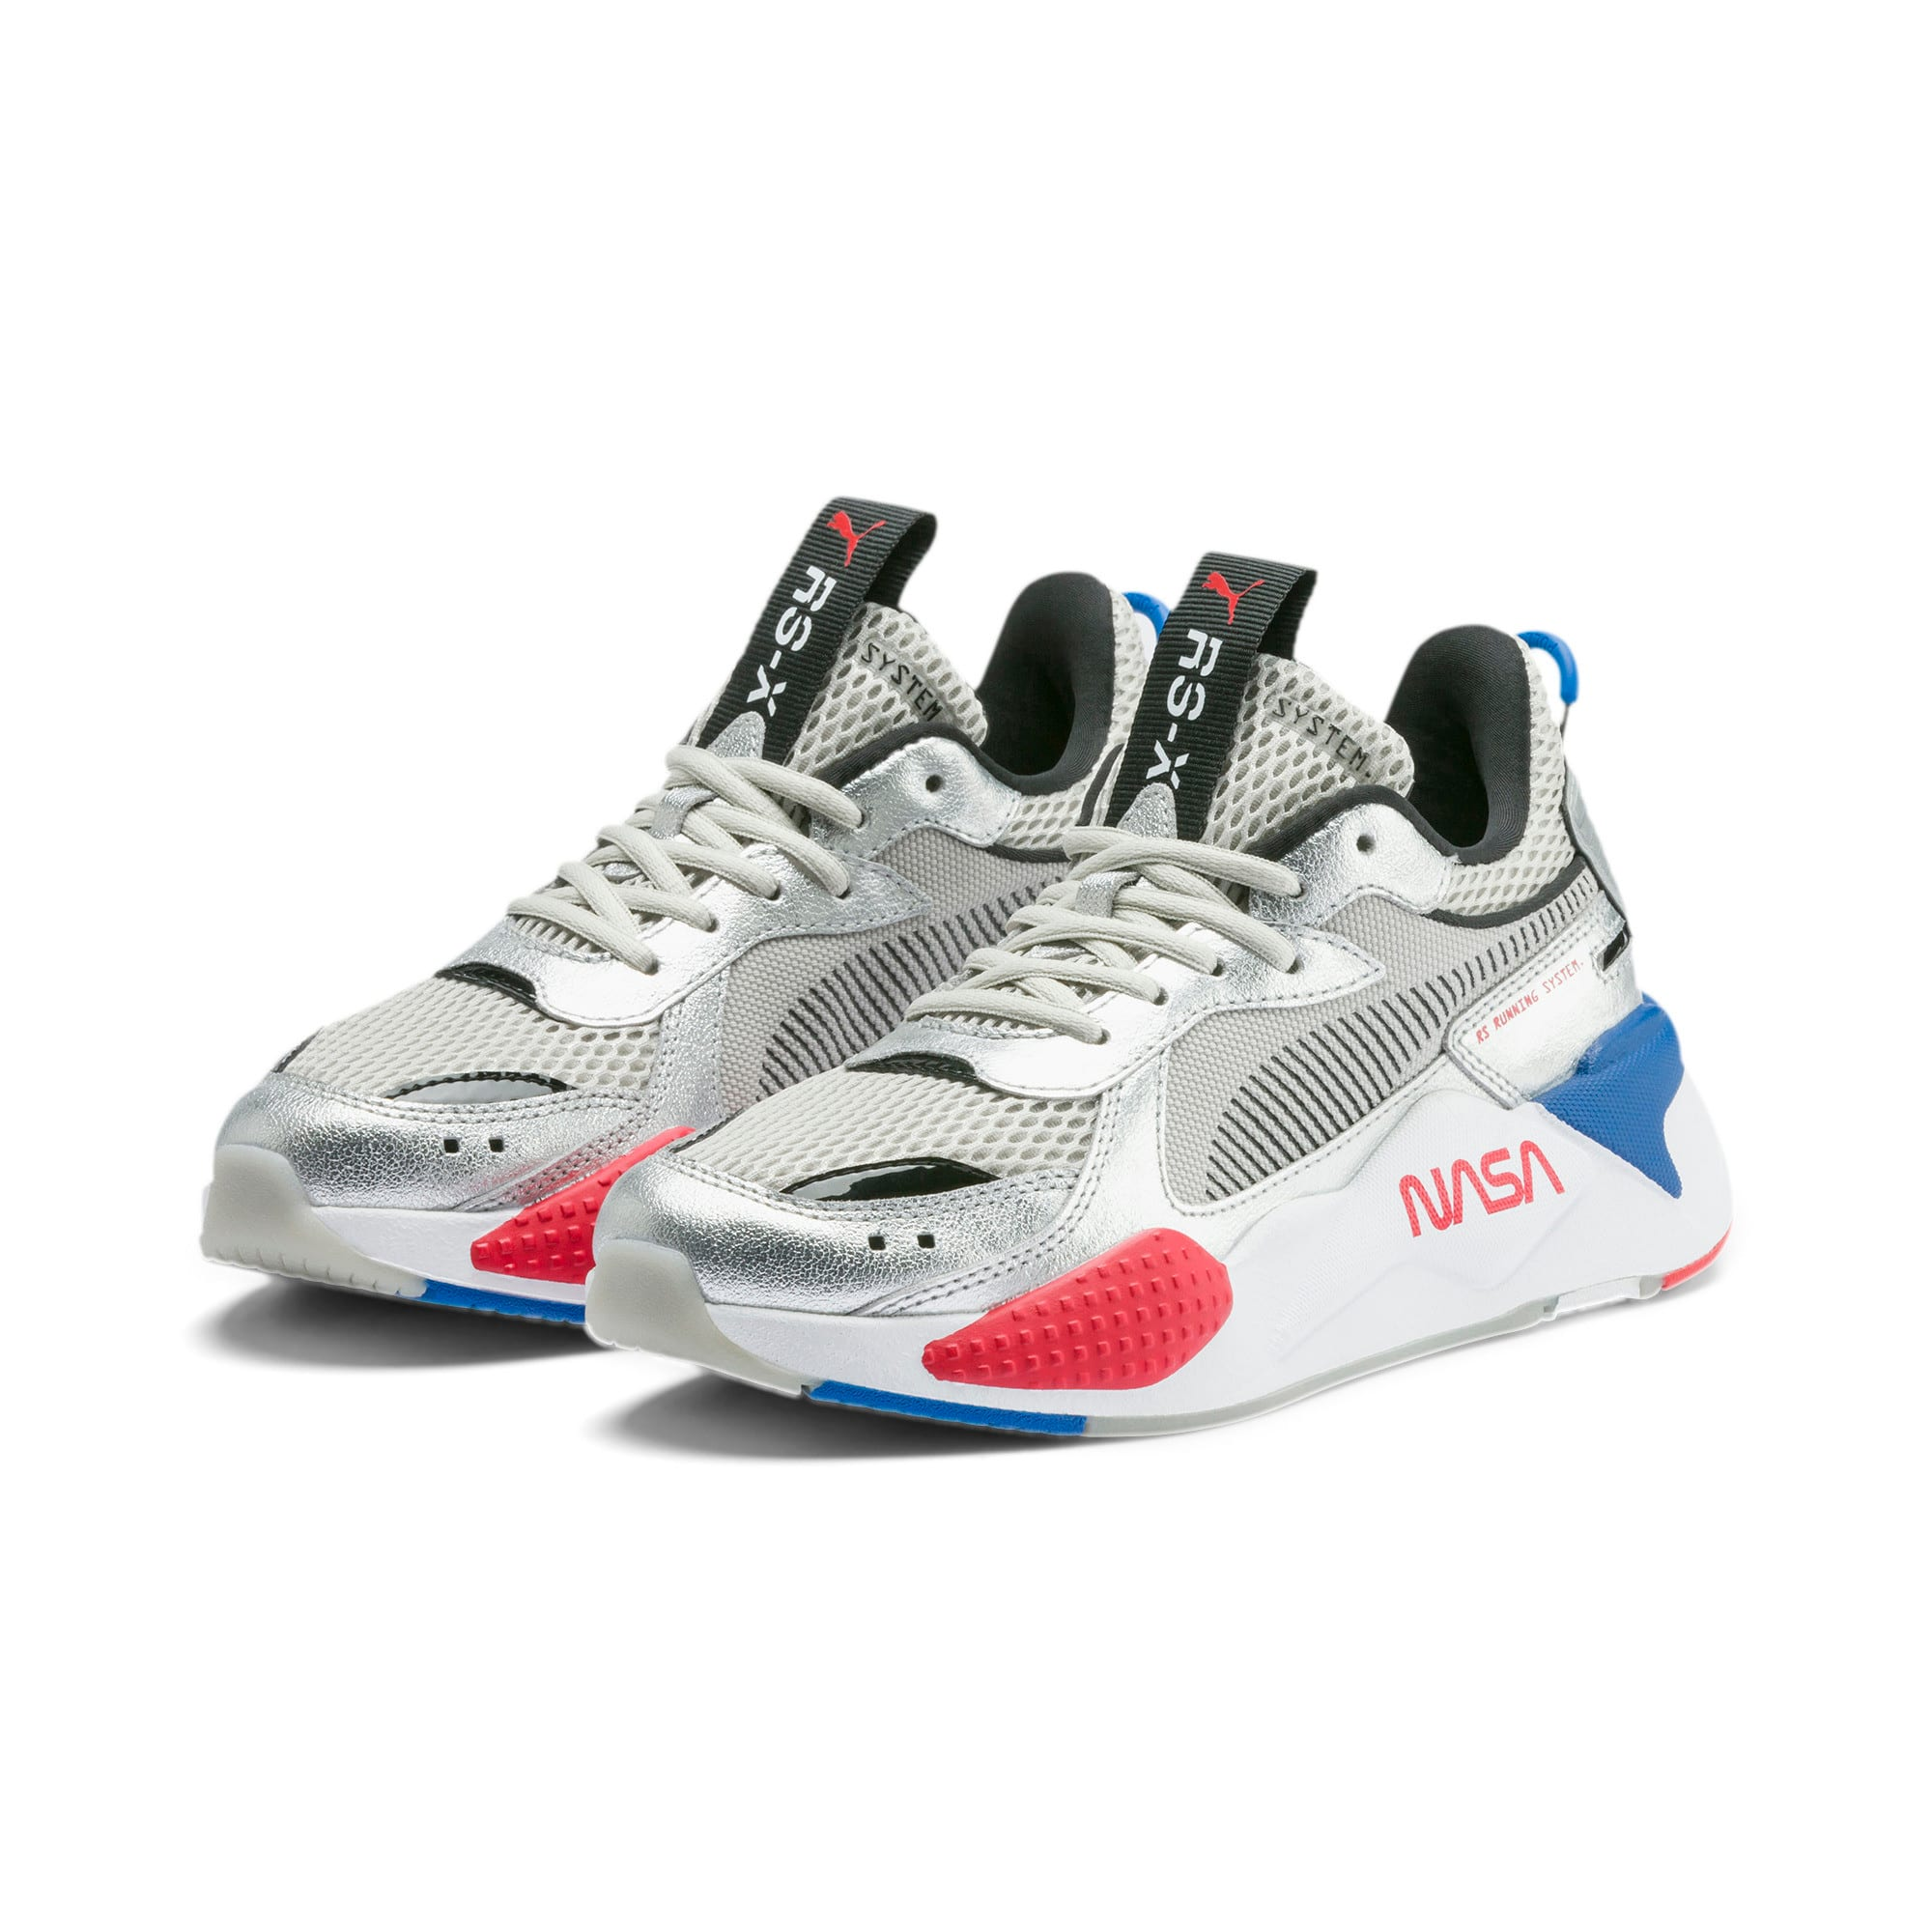 Zapatos deportivos RS-X Space Agency JR, Puma Silver-Gray Violet, grande